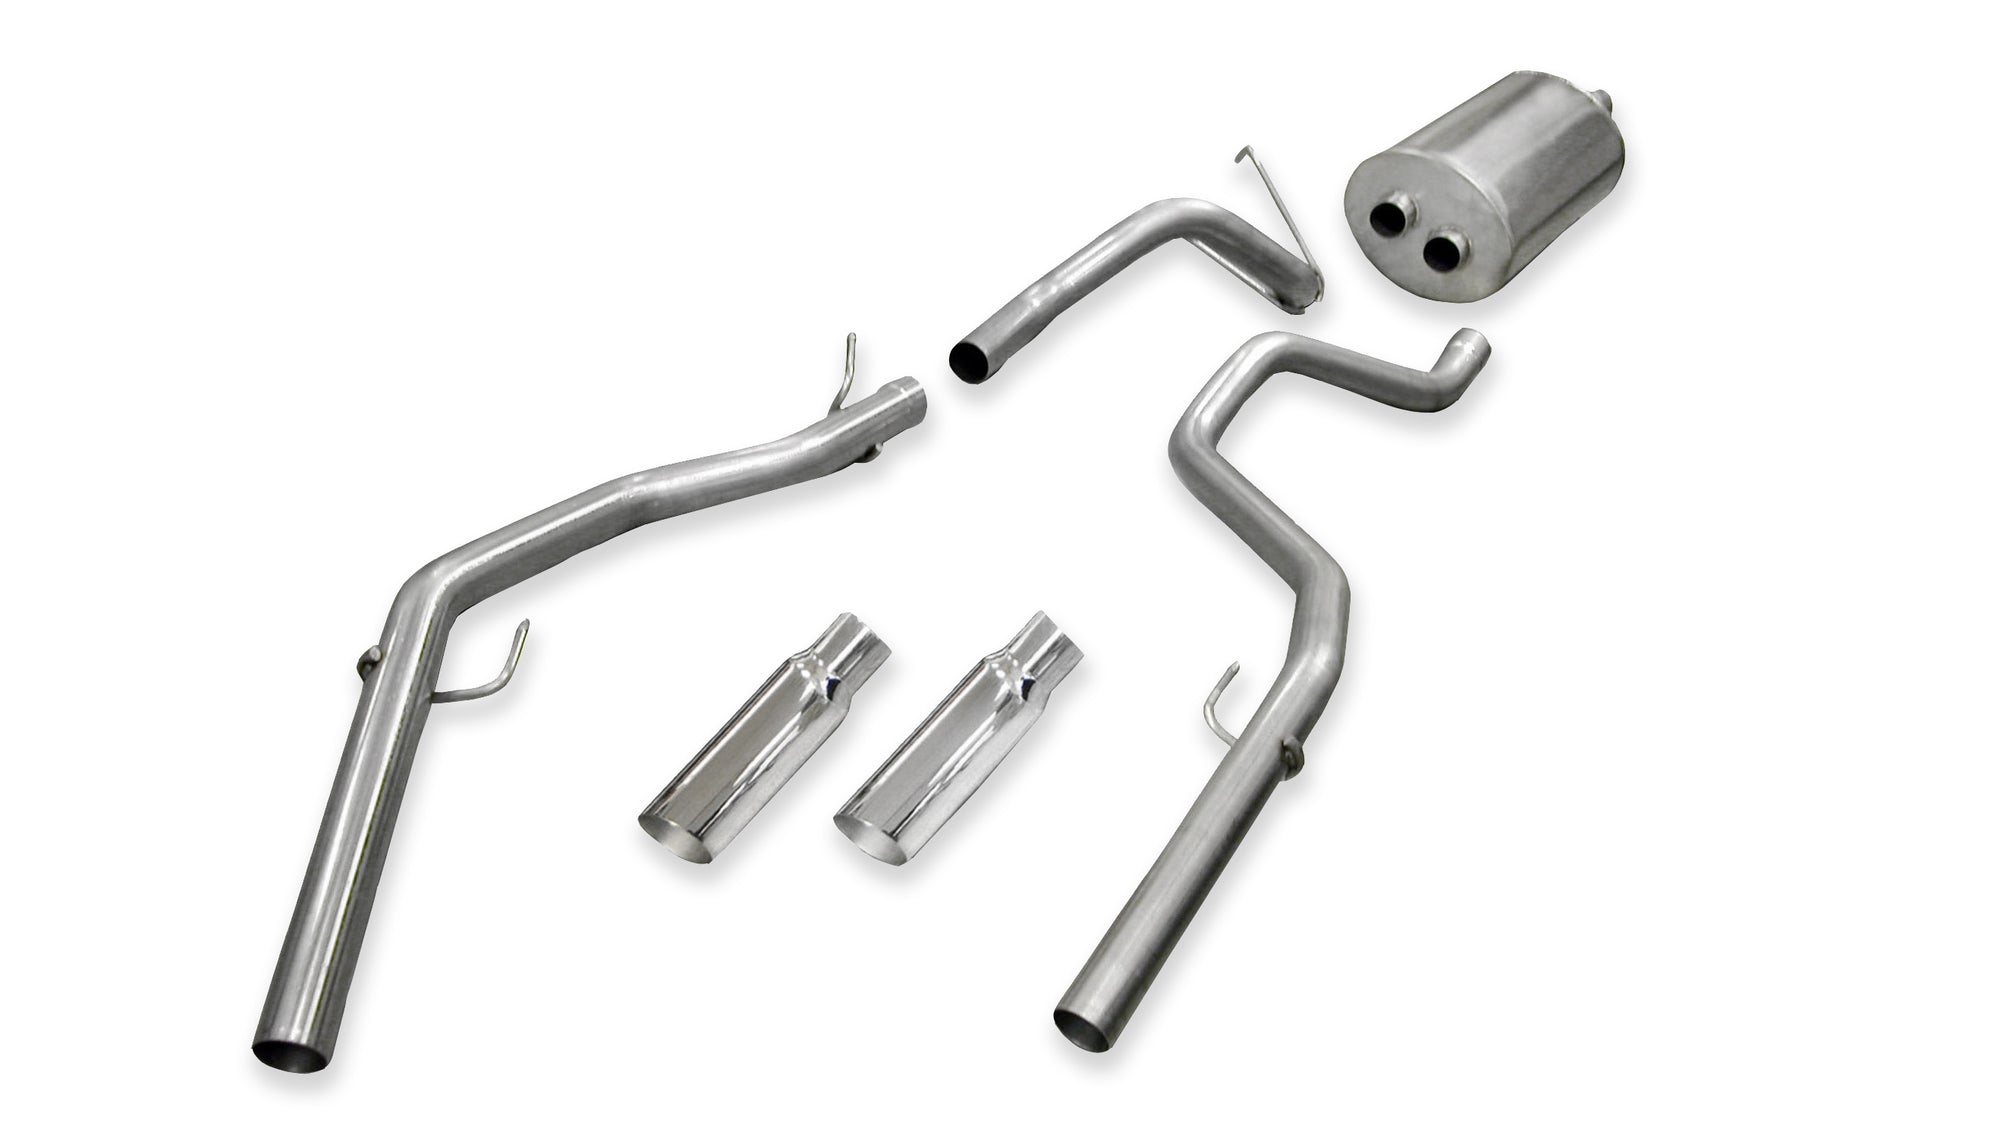 2009-2019 Dodge Ram 1500 4.7 or 5.7L V8 Cat-Back Exhaust